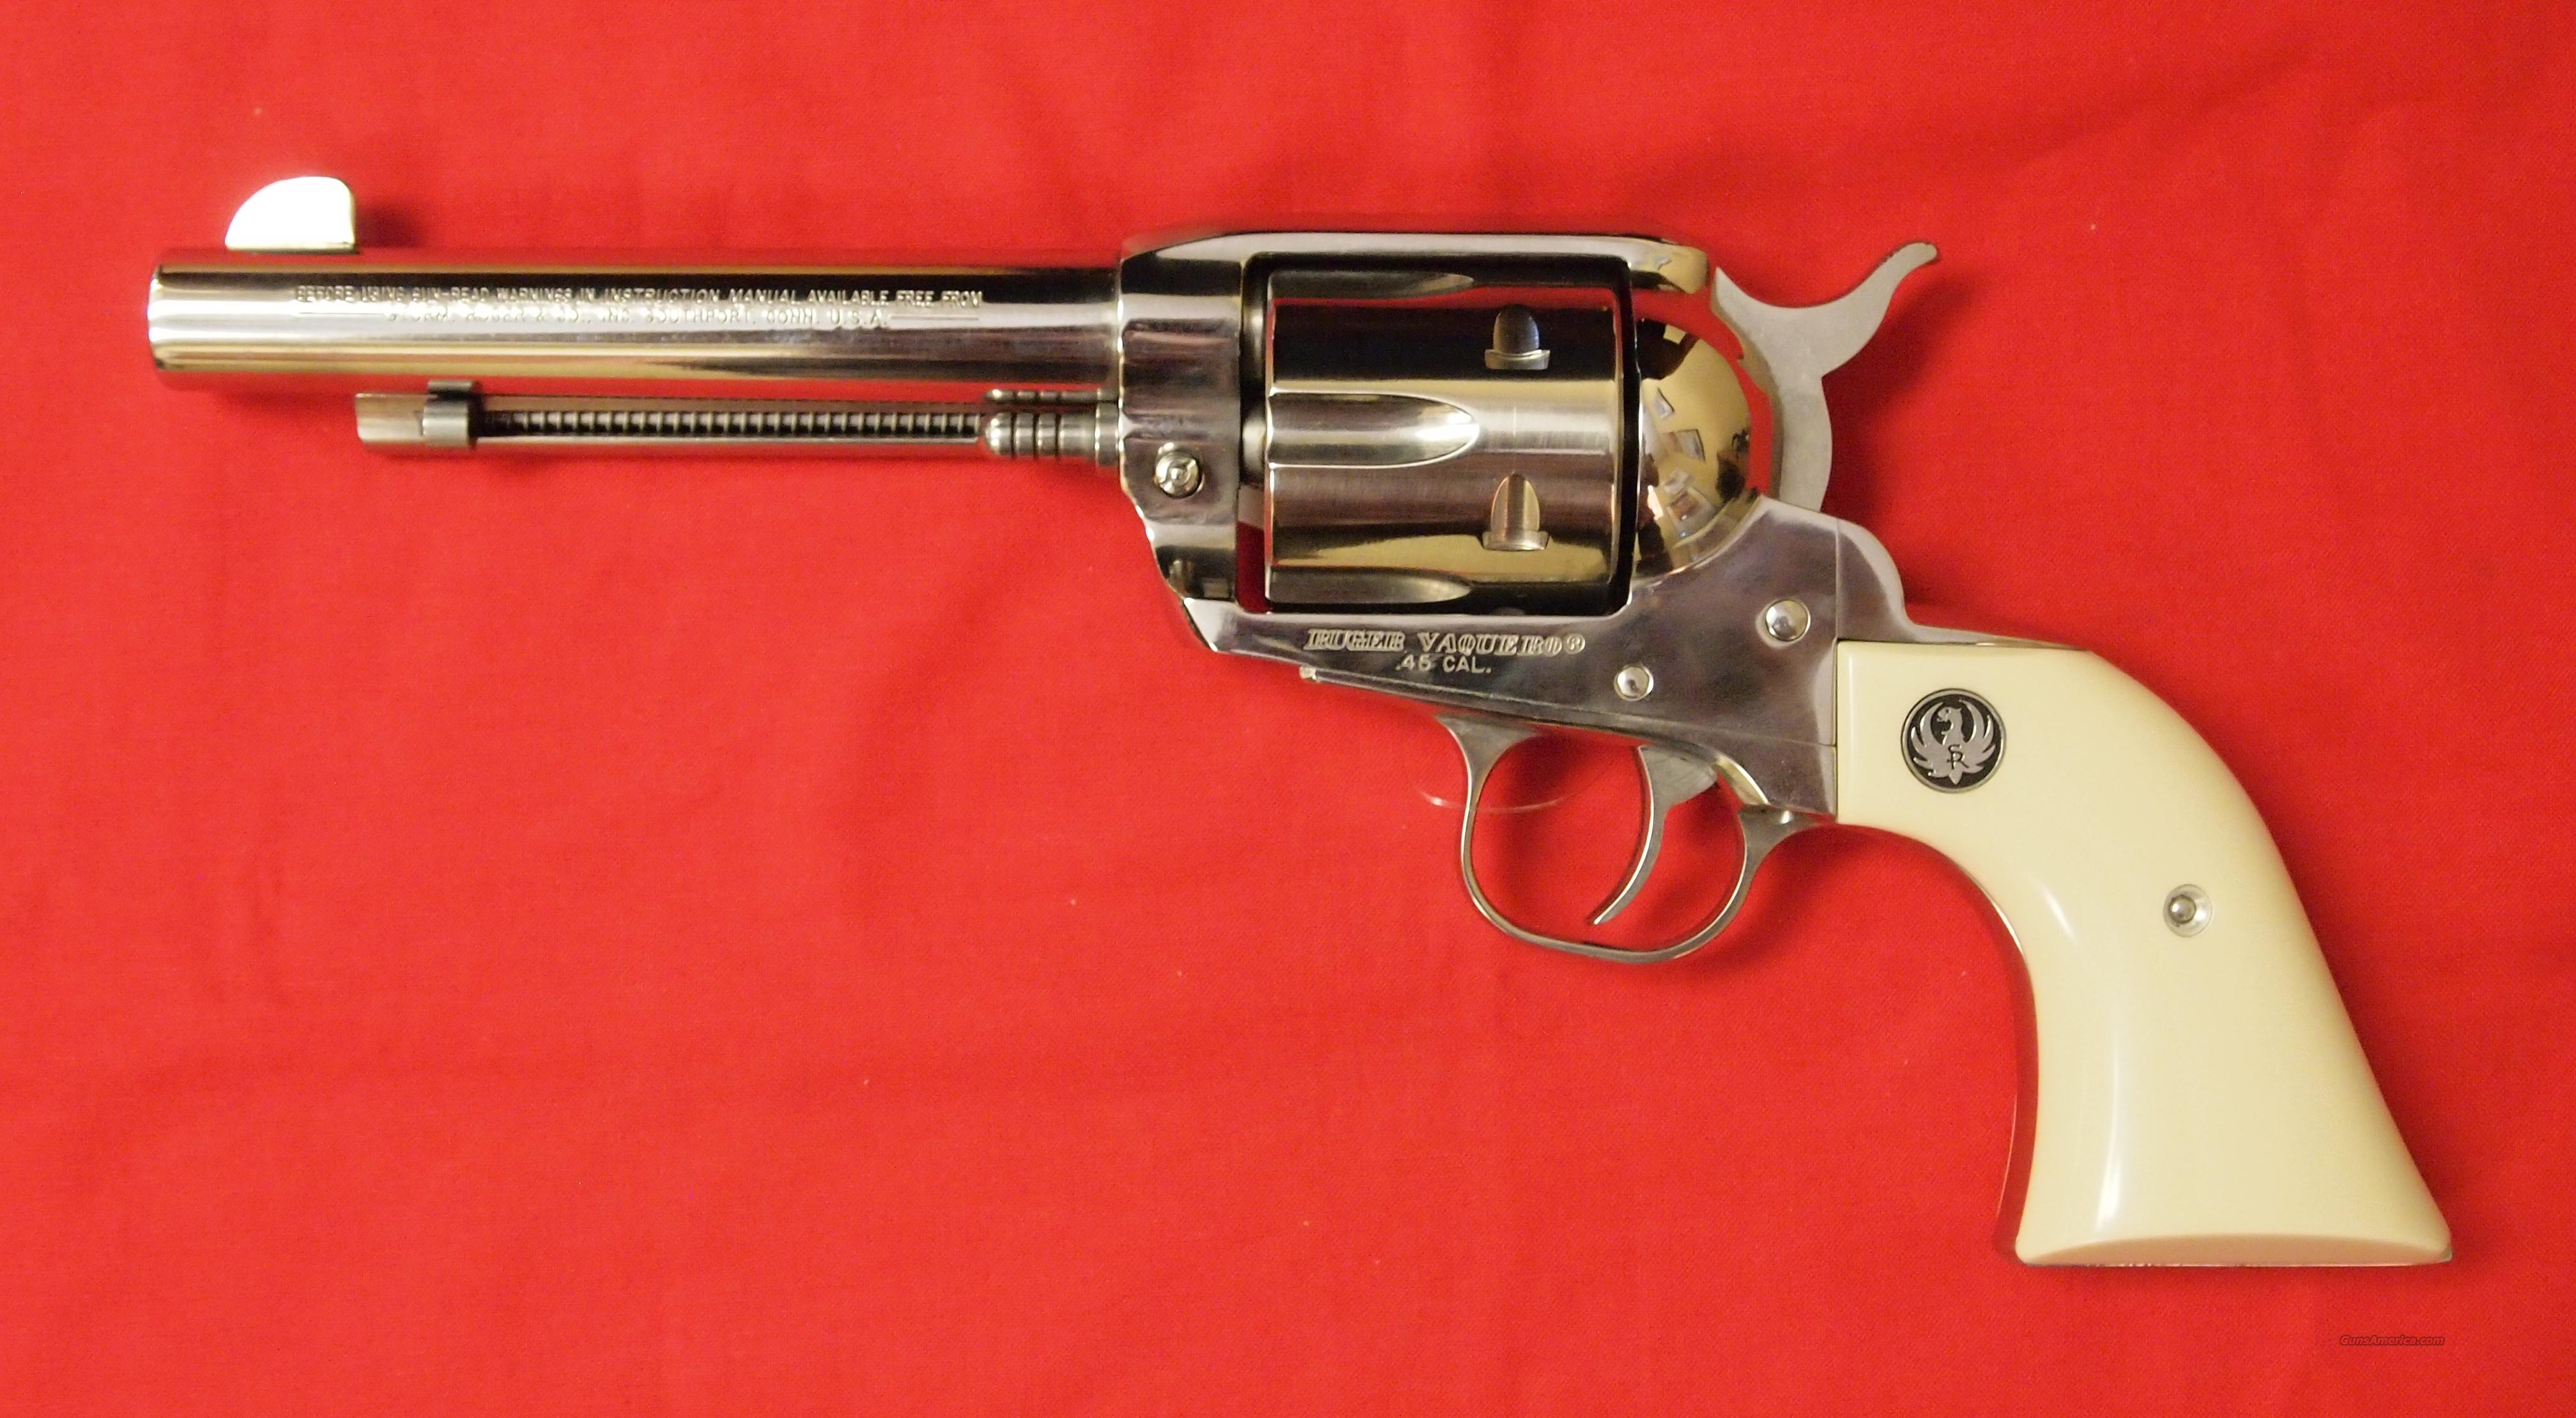 Ruger Vaquero Stainless Steel .45LC  Guns > Pistols > Ruger Single Action Revolvers > Single Six Type